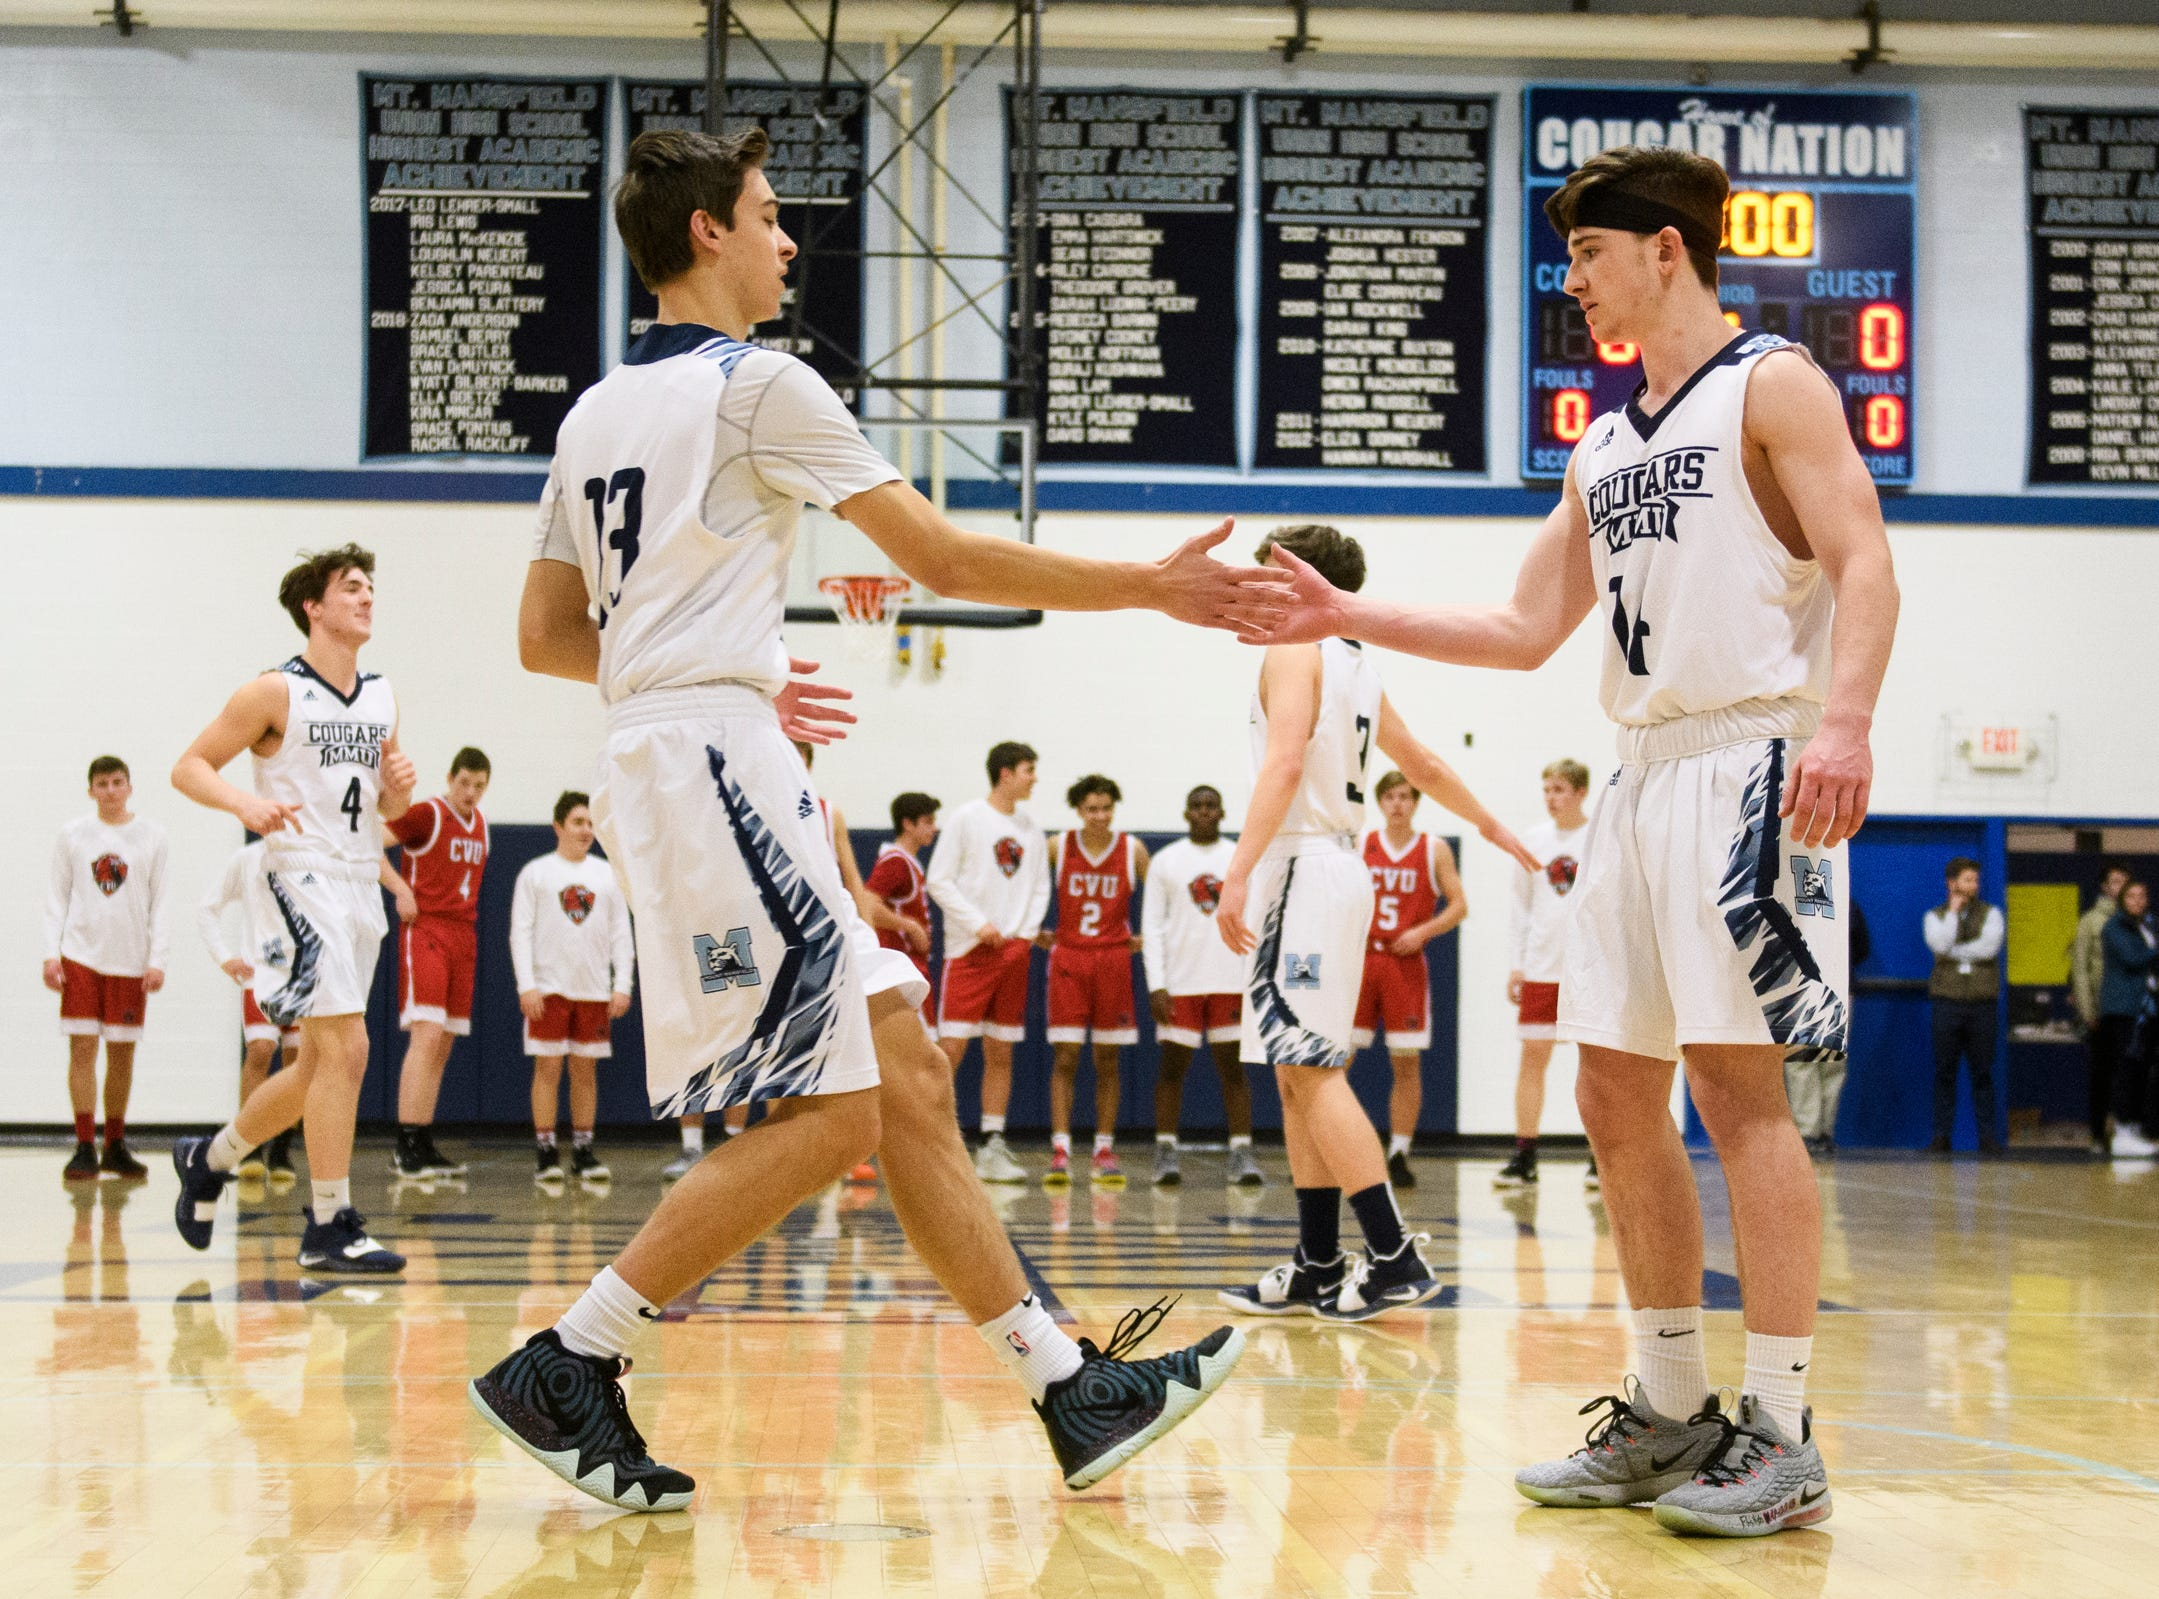 MMU's Becket Hill (13) is greeted by Mike Dix (14) as he takes the court during player introductions in the boys basketball game between the Champlain Valley Union Redhawks and the Mount Mansfield Cougars at MMU High School on Tuesday night January 22, 2019 in Jericho.